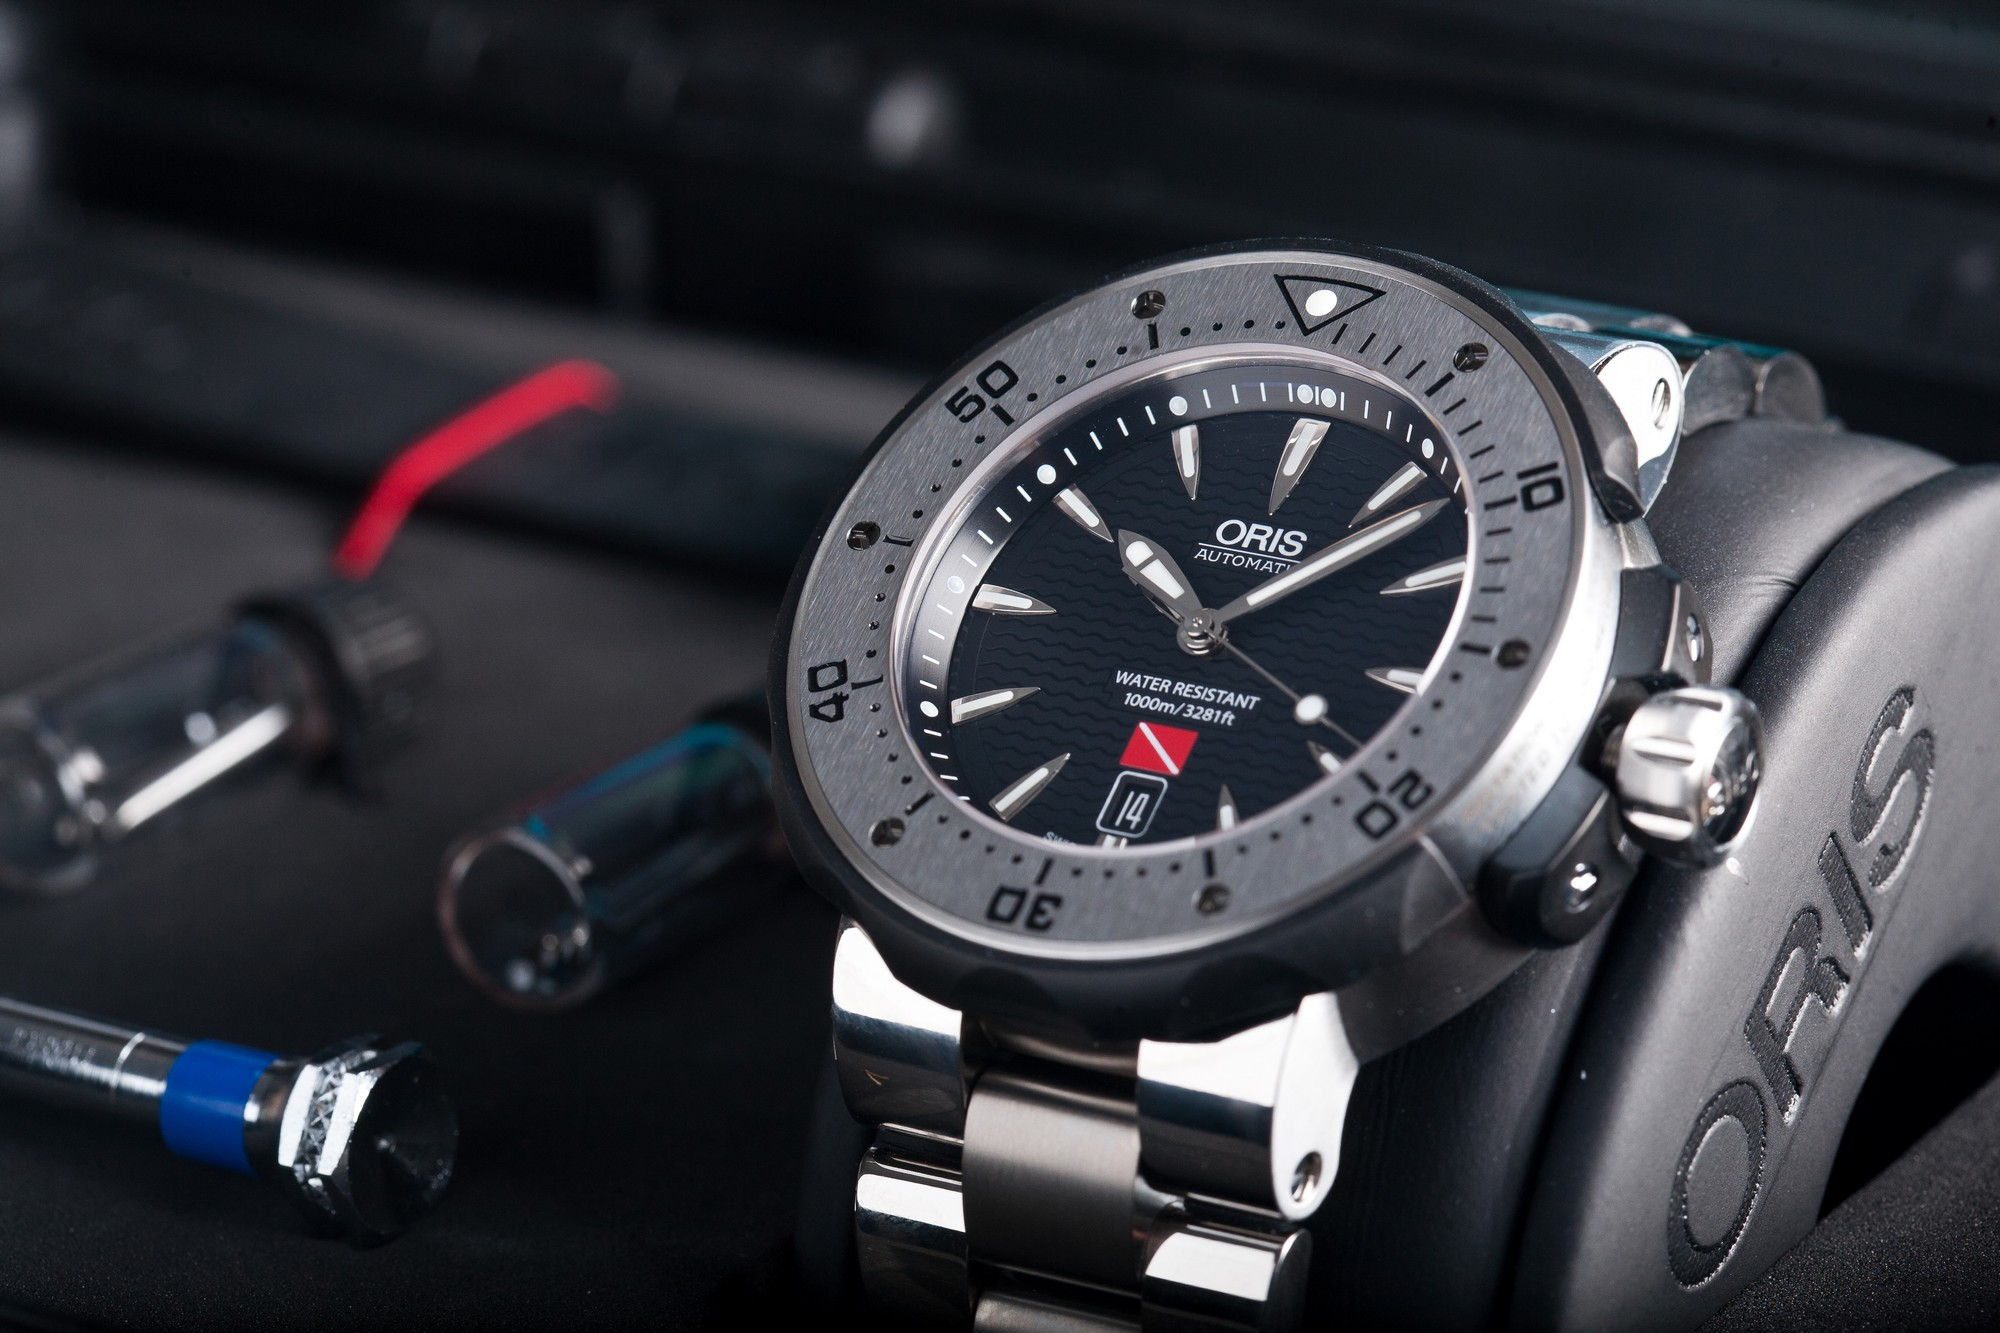 The oris prodiver chronograph resurfaces | watchtime usa's no. 1.